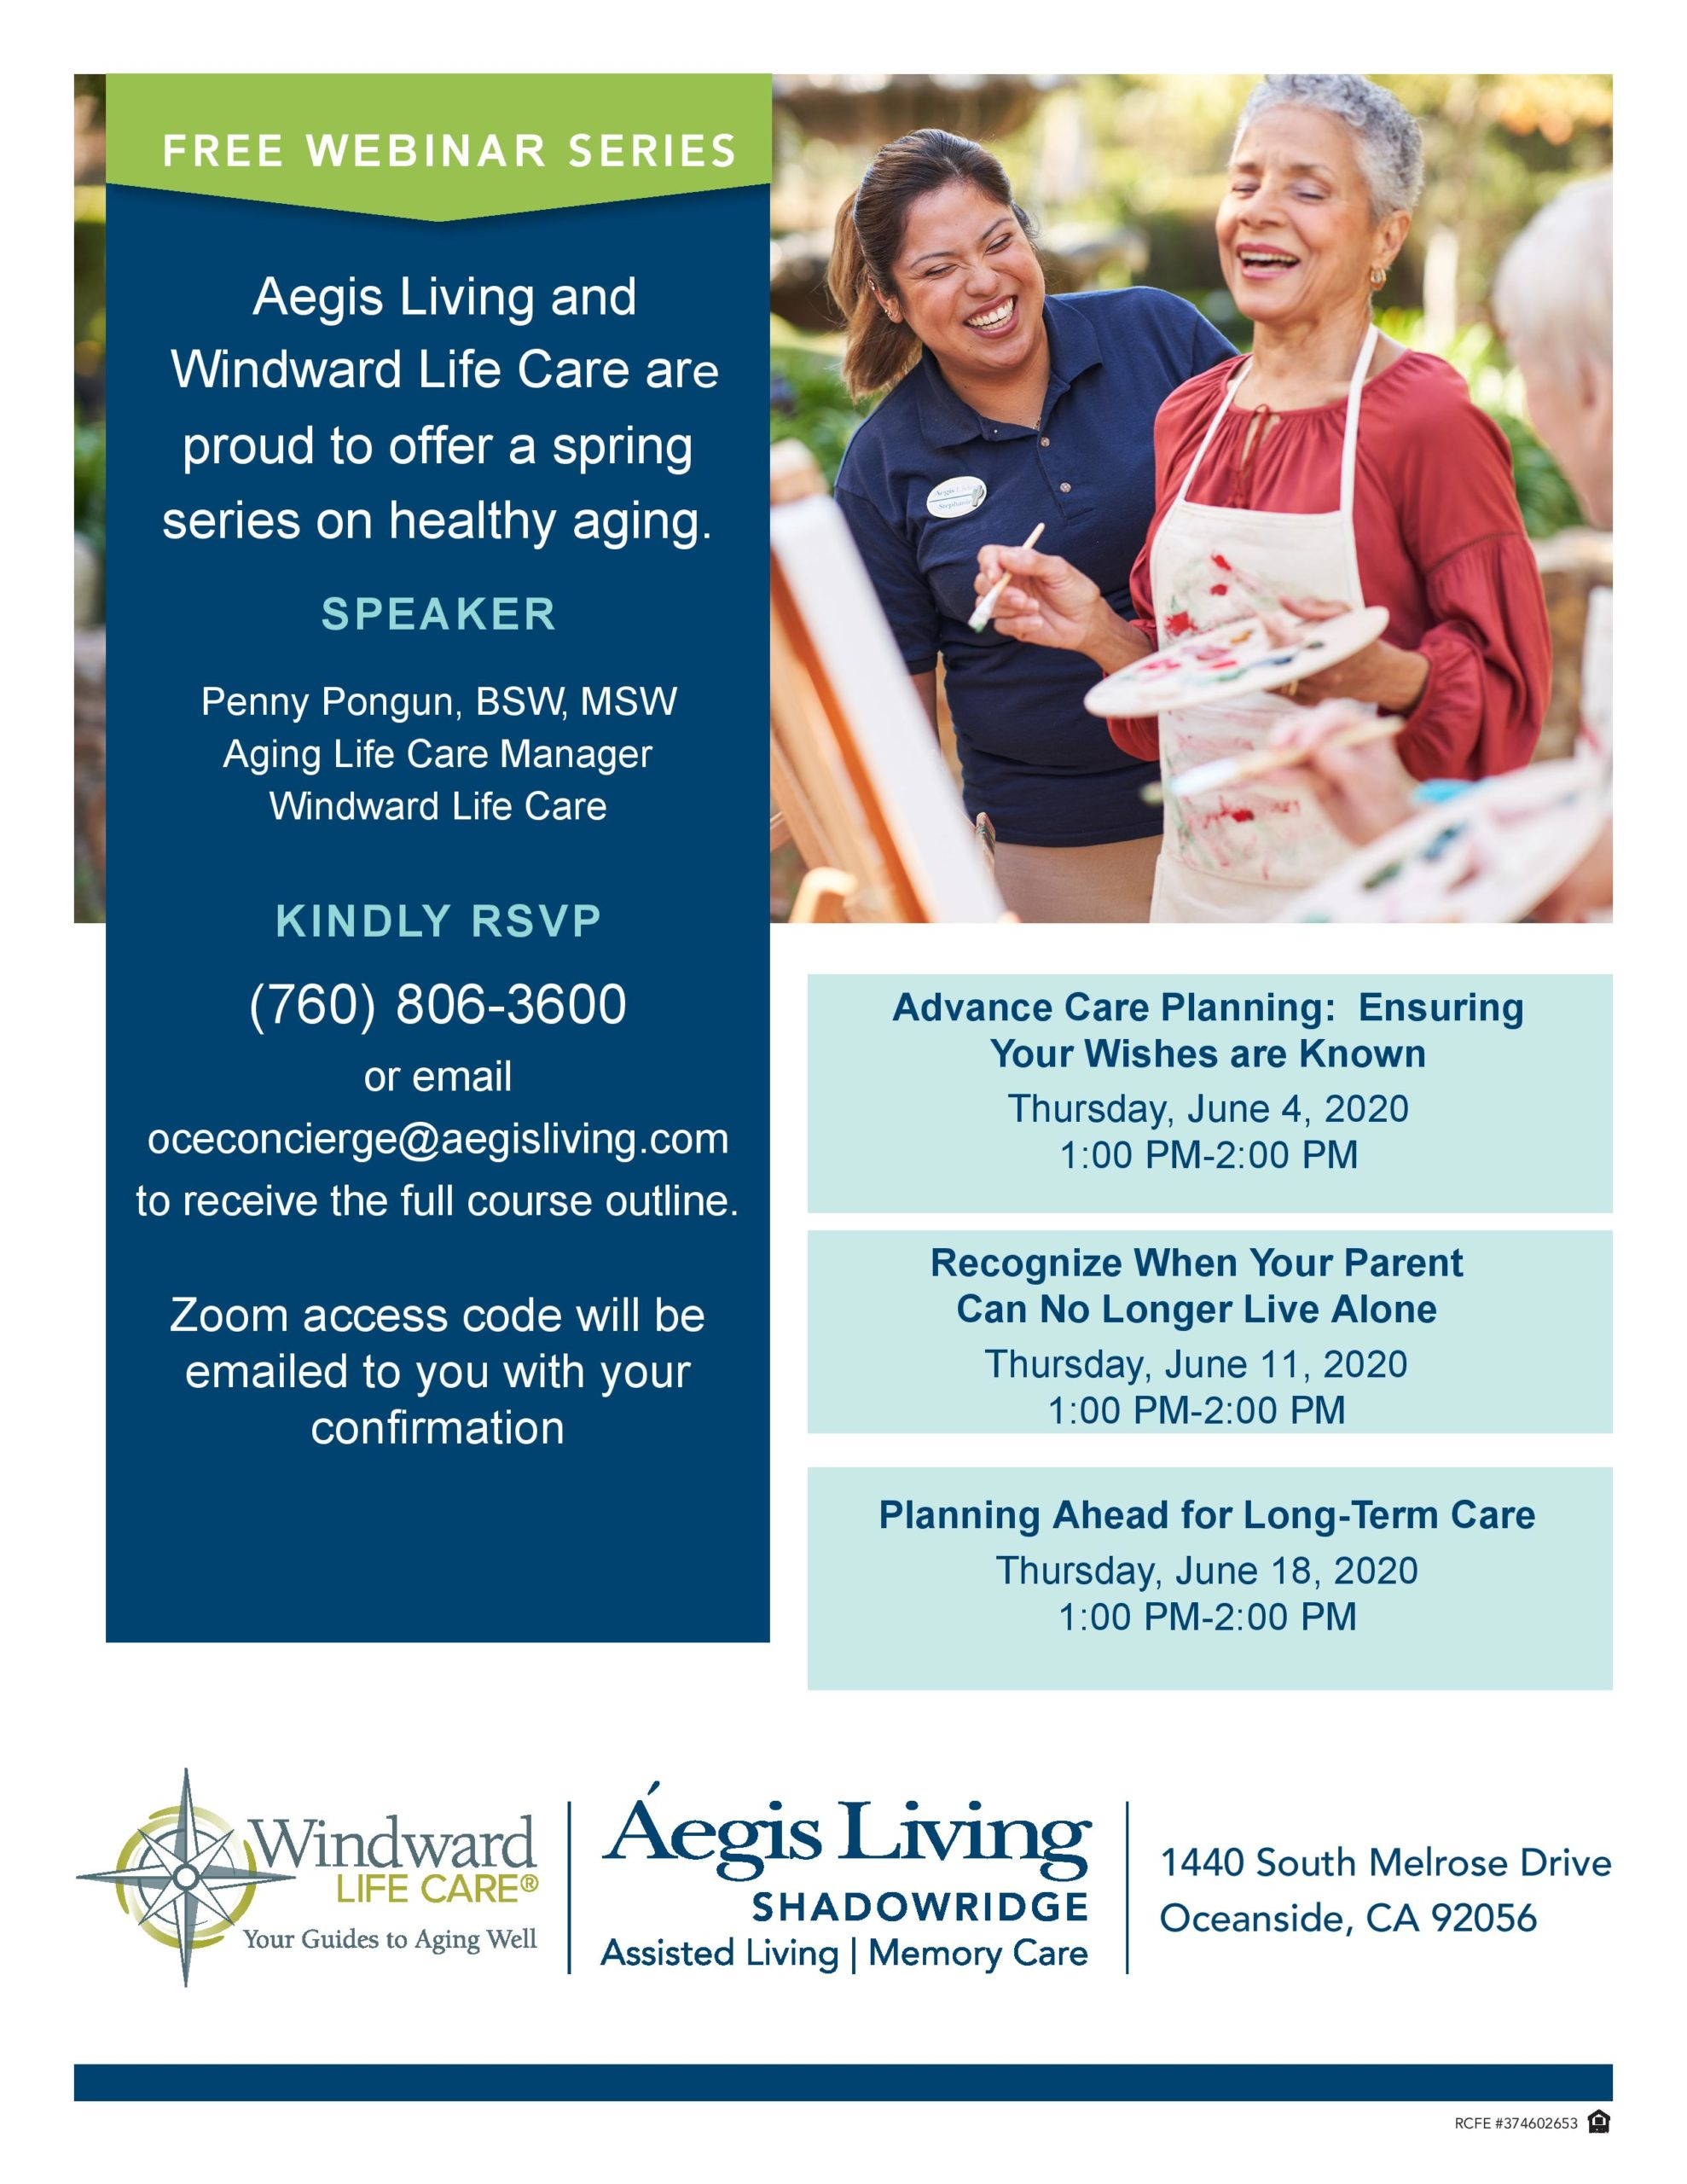 Aegis Assisted Living Webinar Series on Healthy Aging